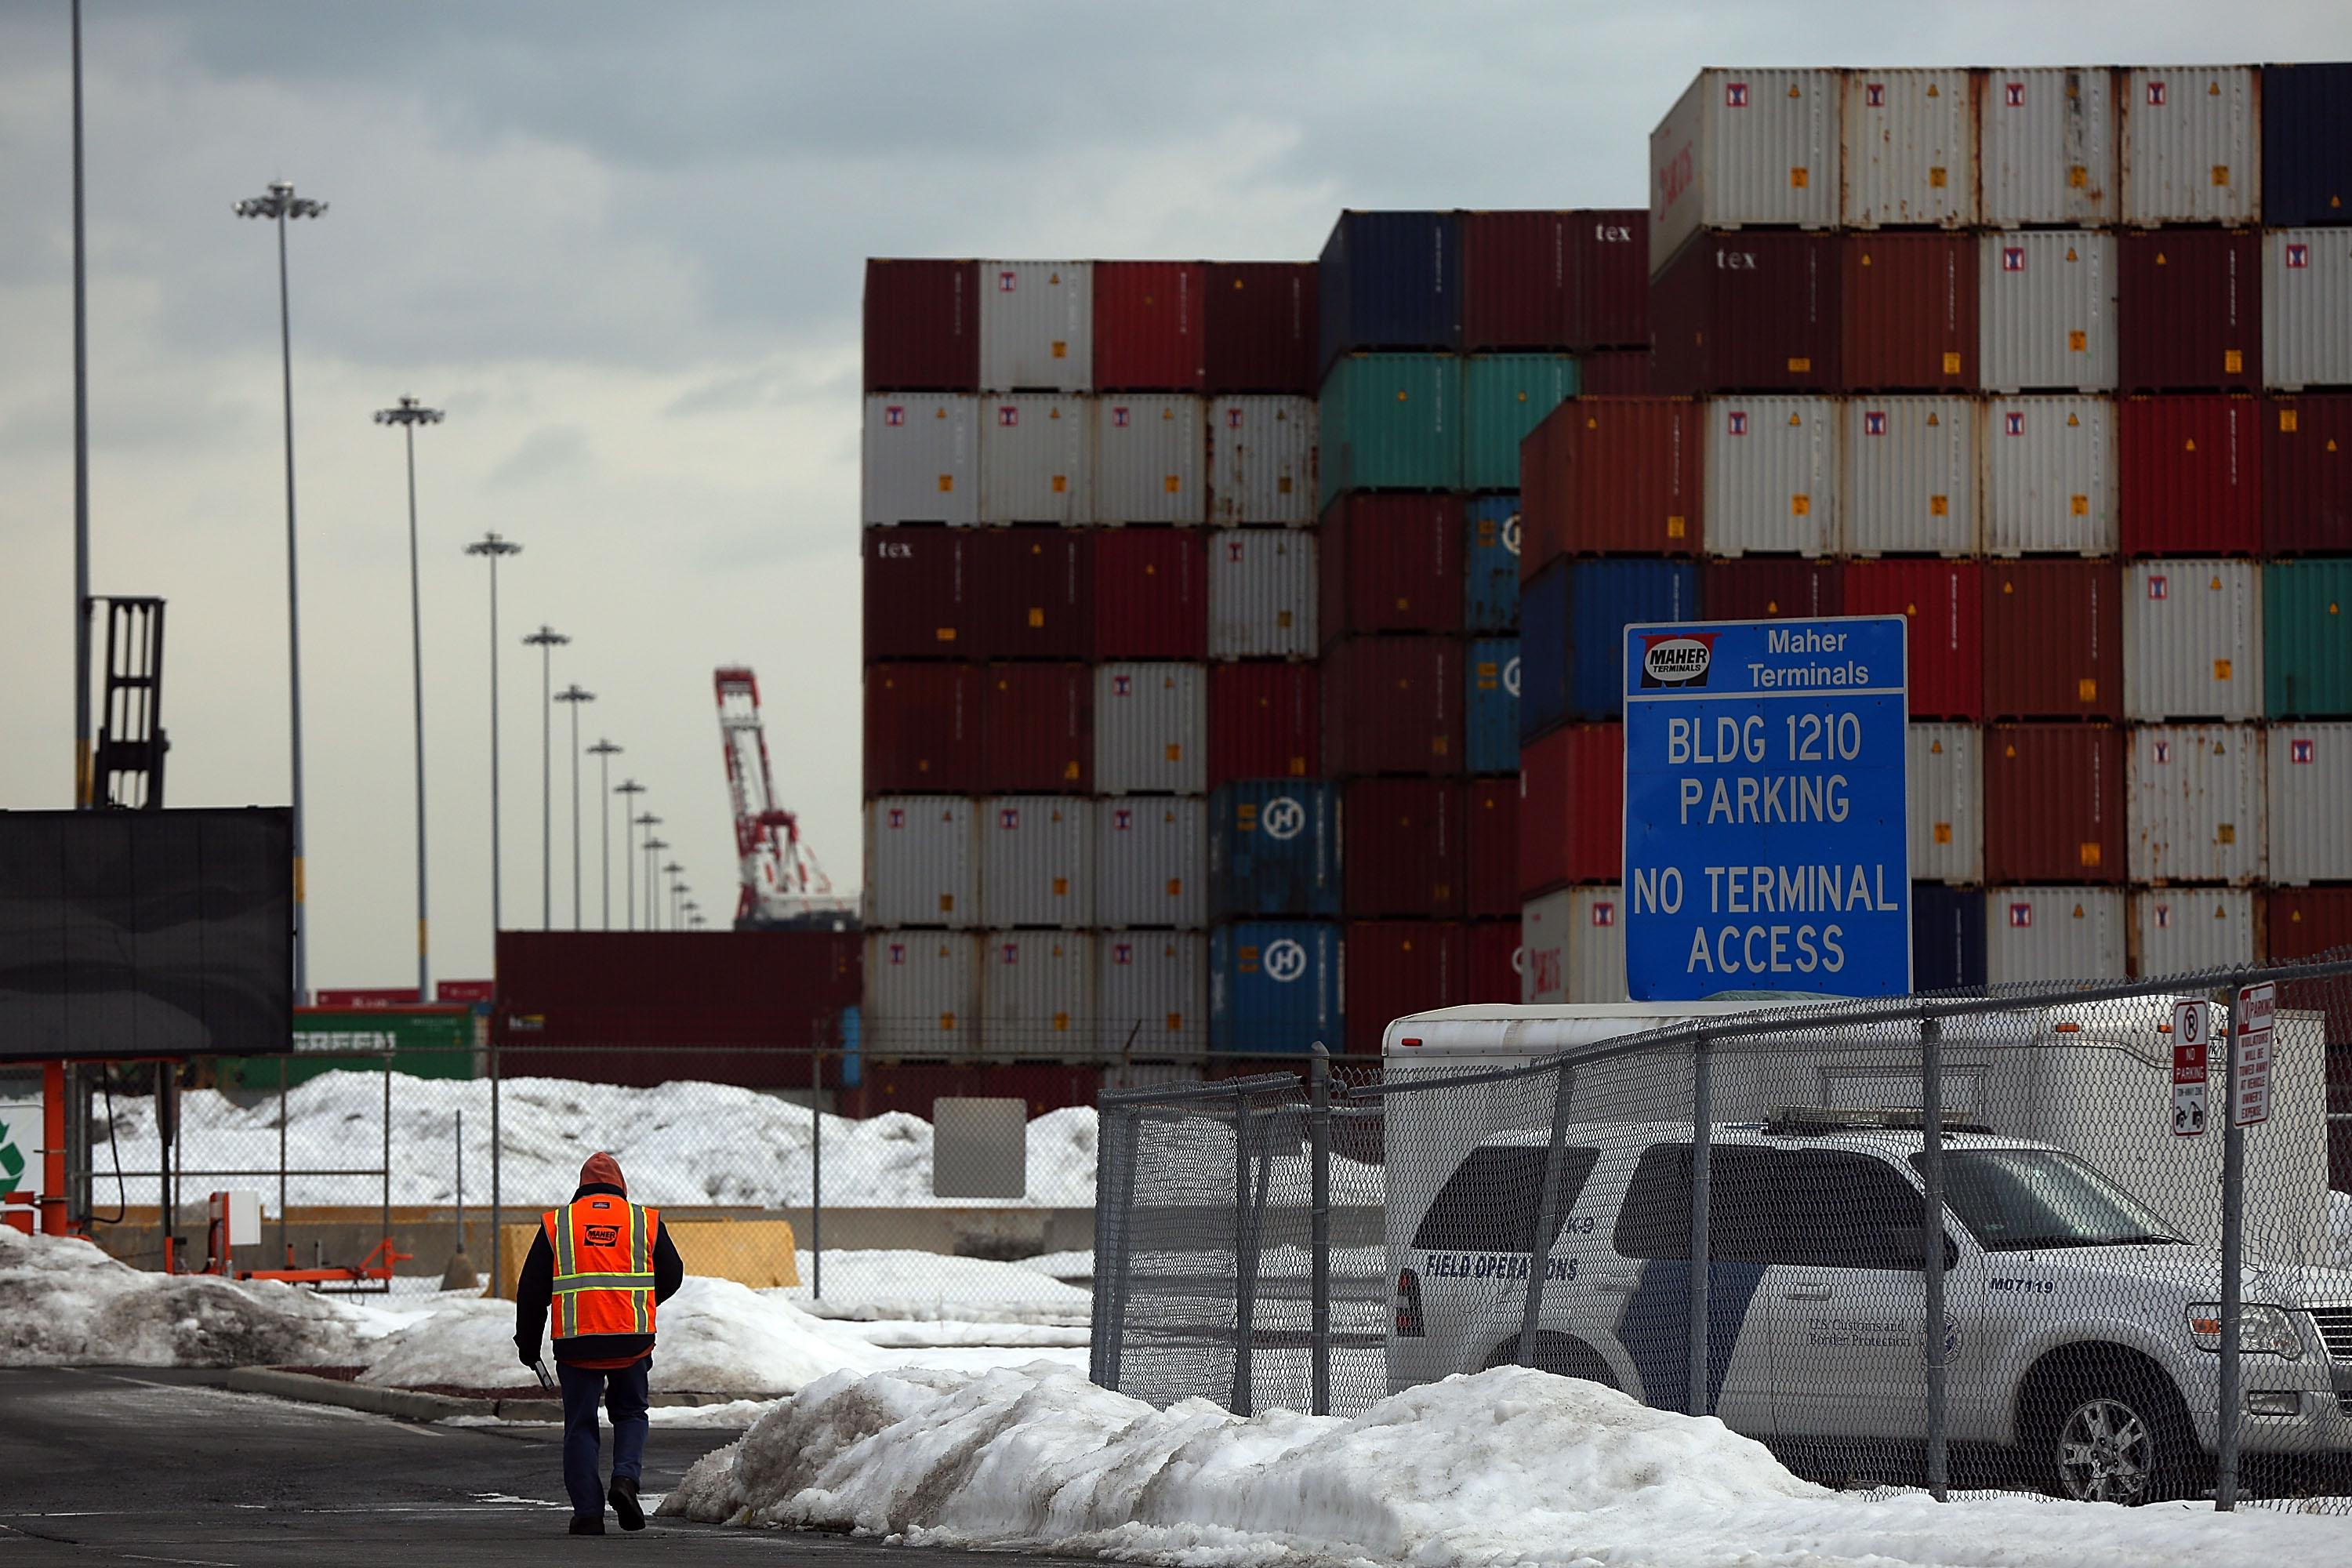 Shipping containers are stacked at the Port of Newark.